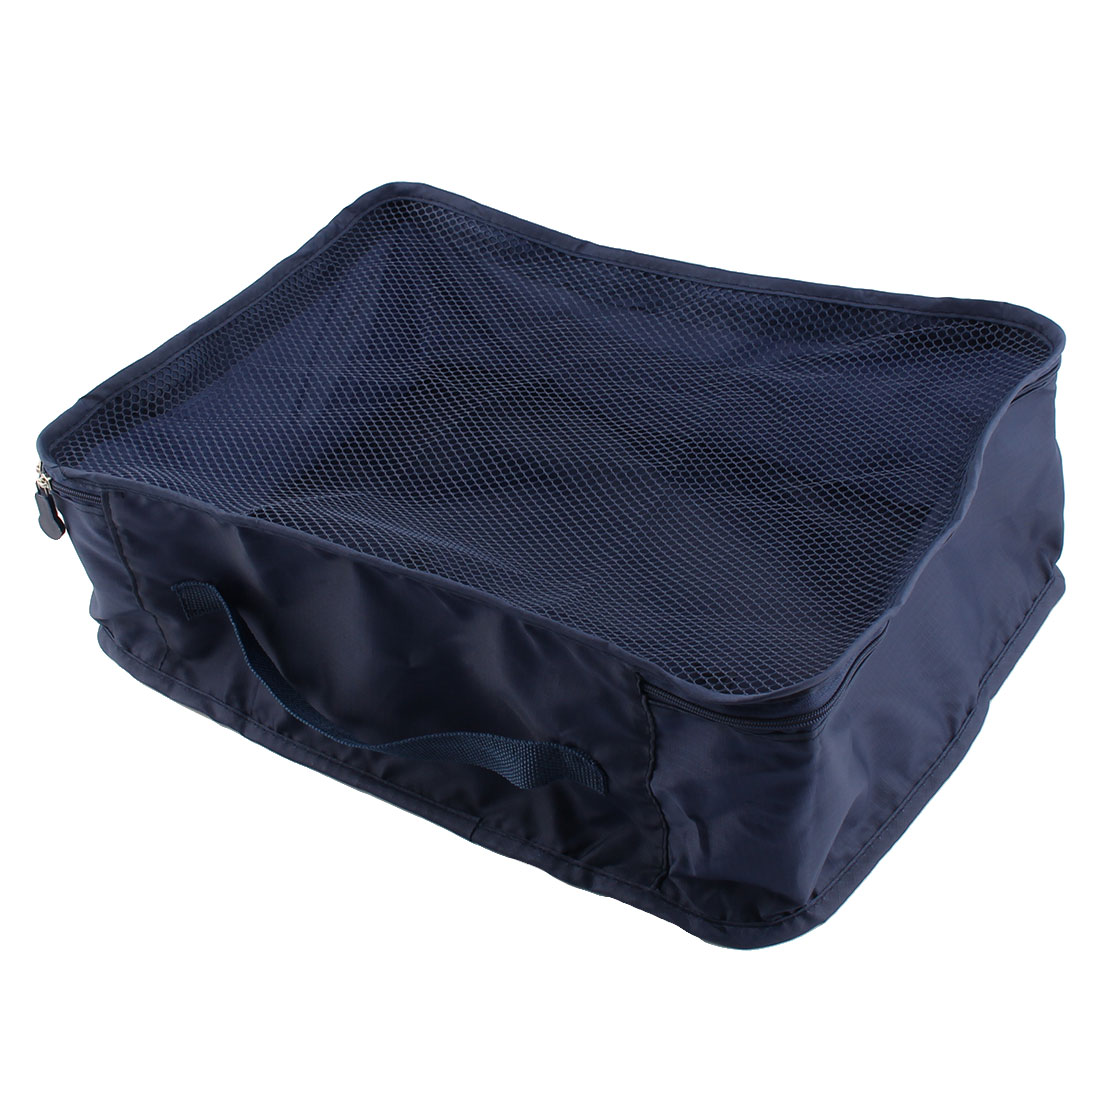 Travelling Zipper Closure Folding Mesh Packing Cube Package Pouch Bag Indigo Navy